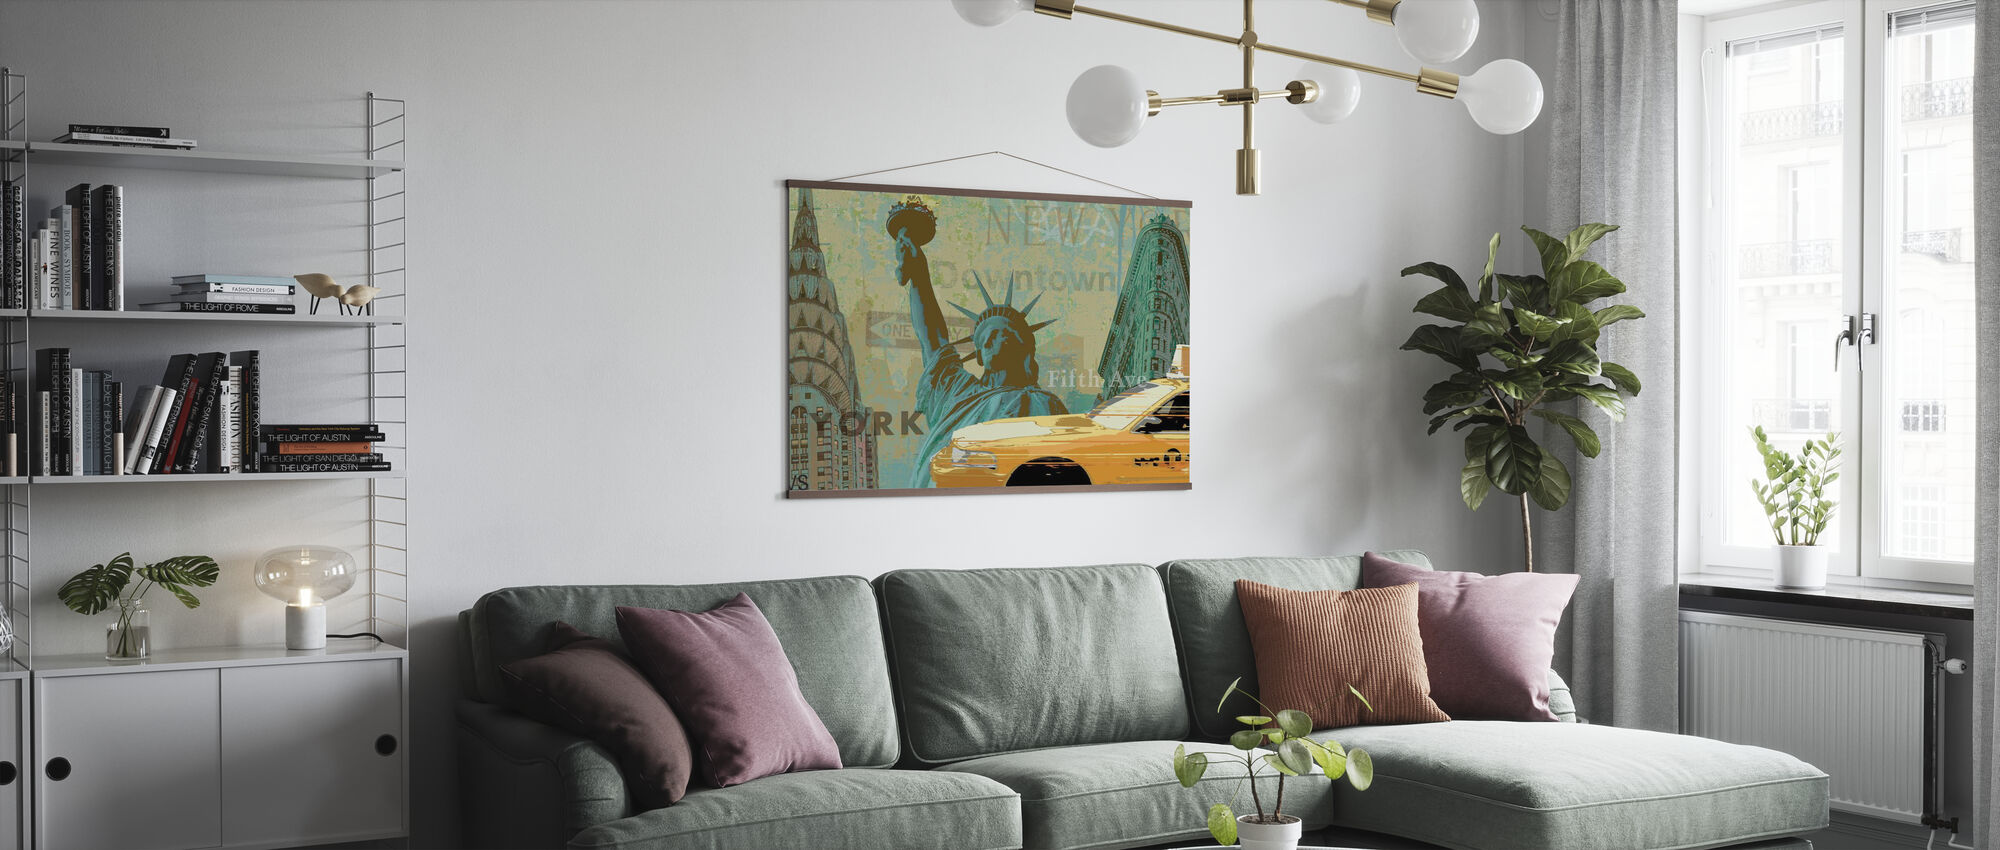 New York Weekend Collection - Poster - Living Room